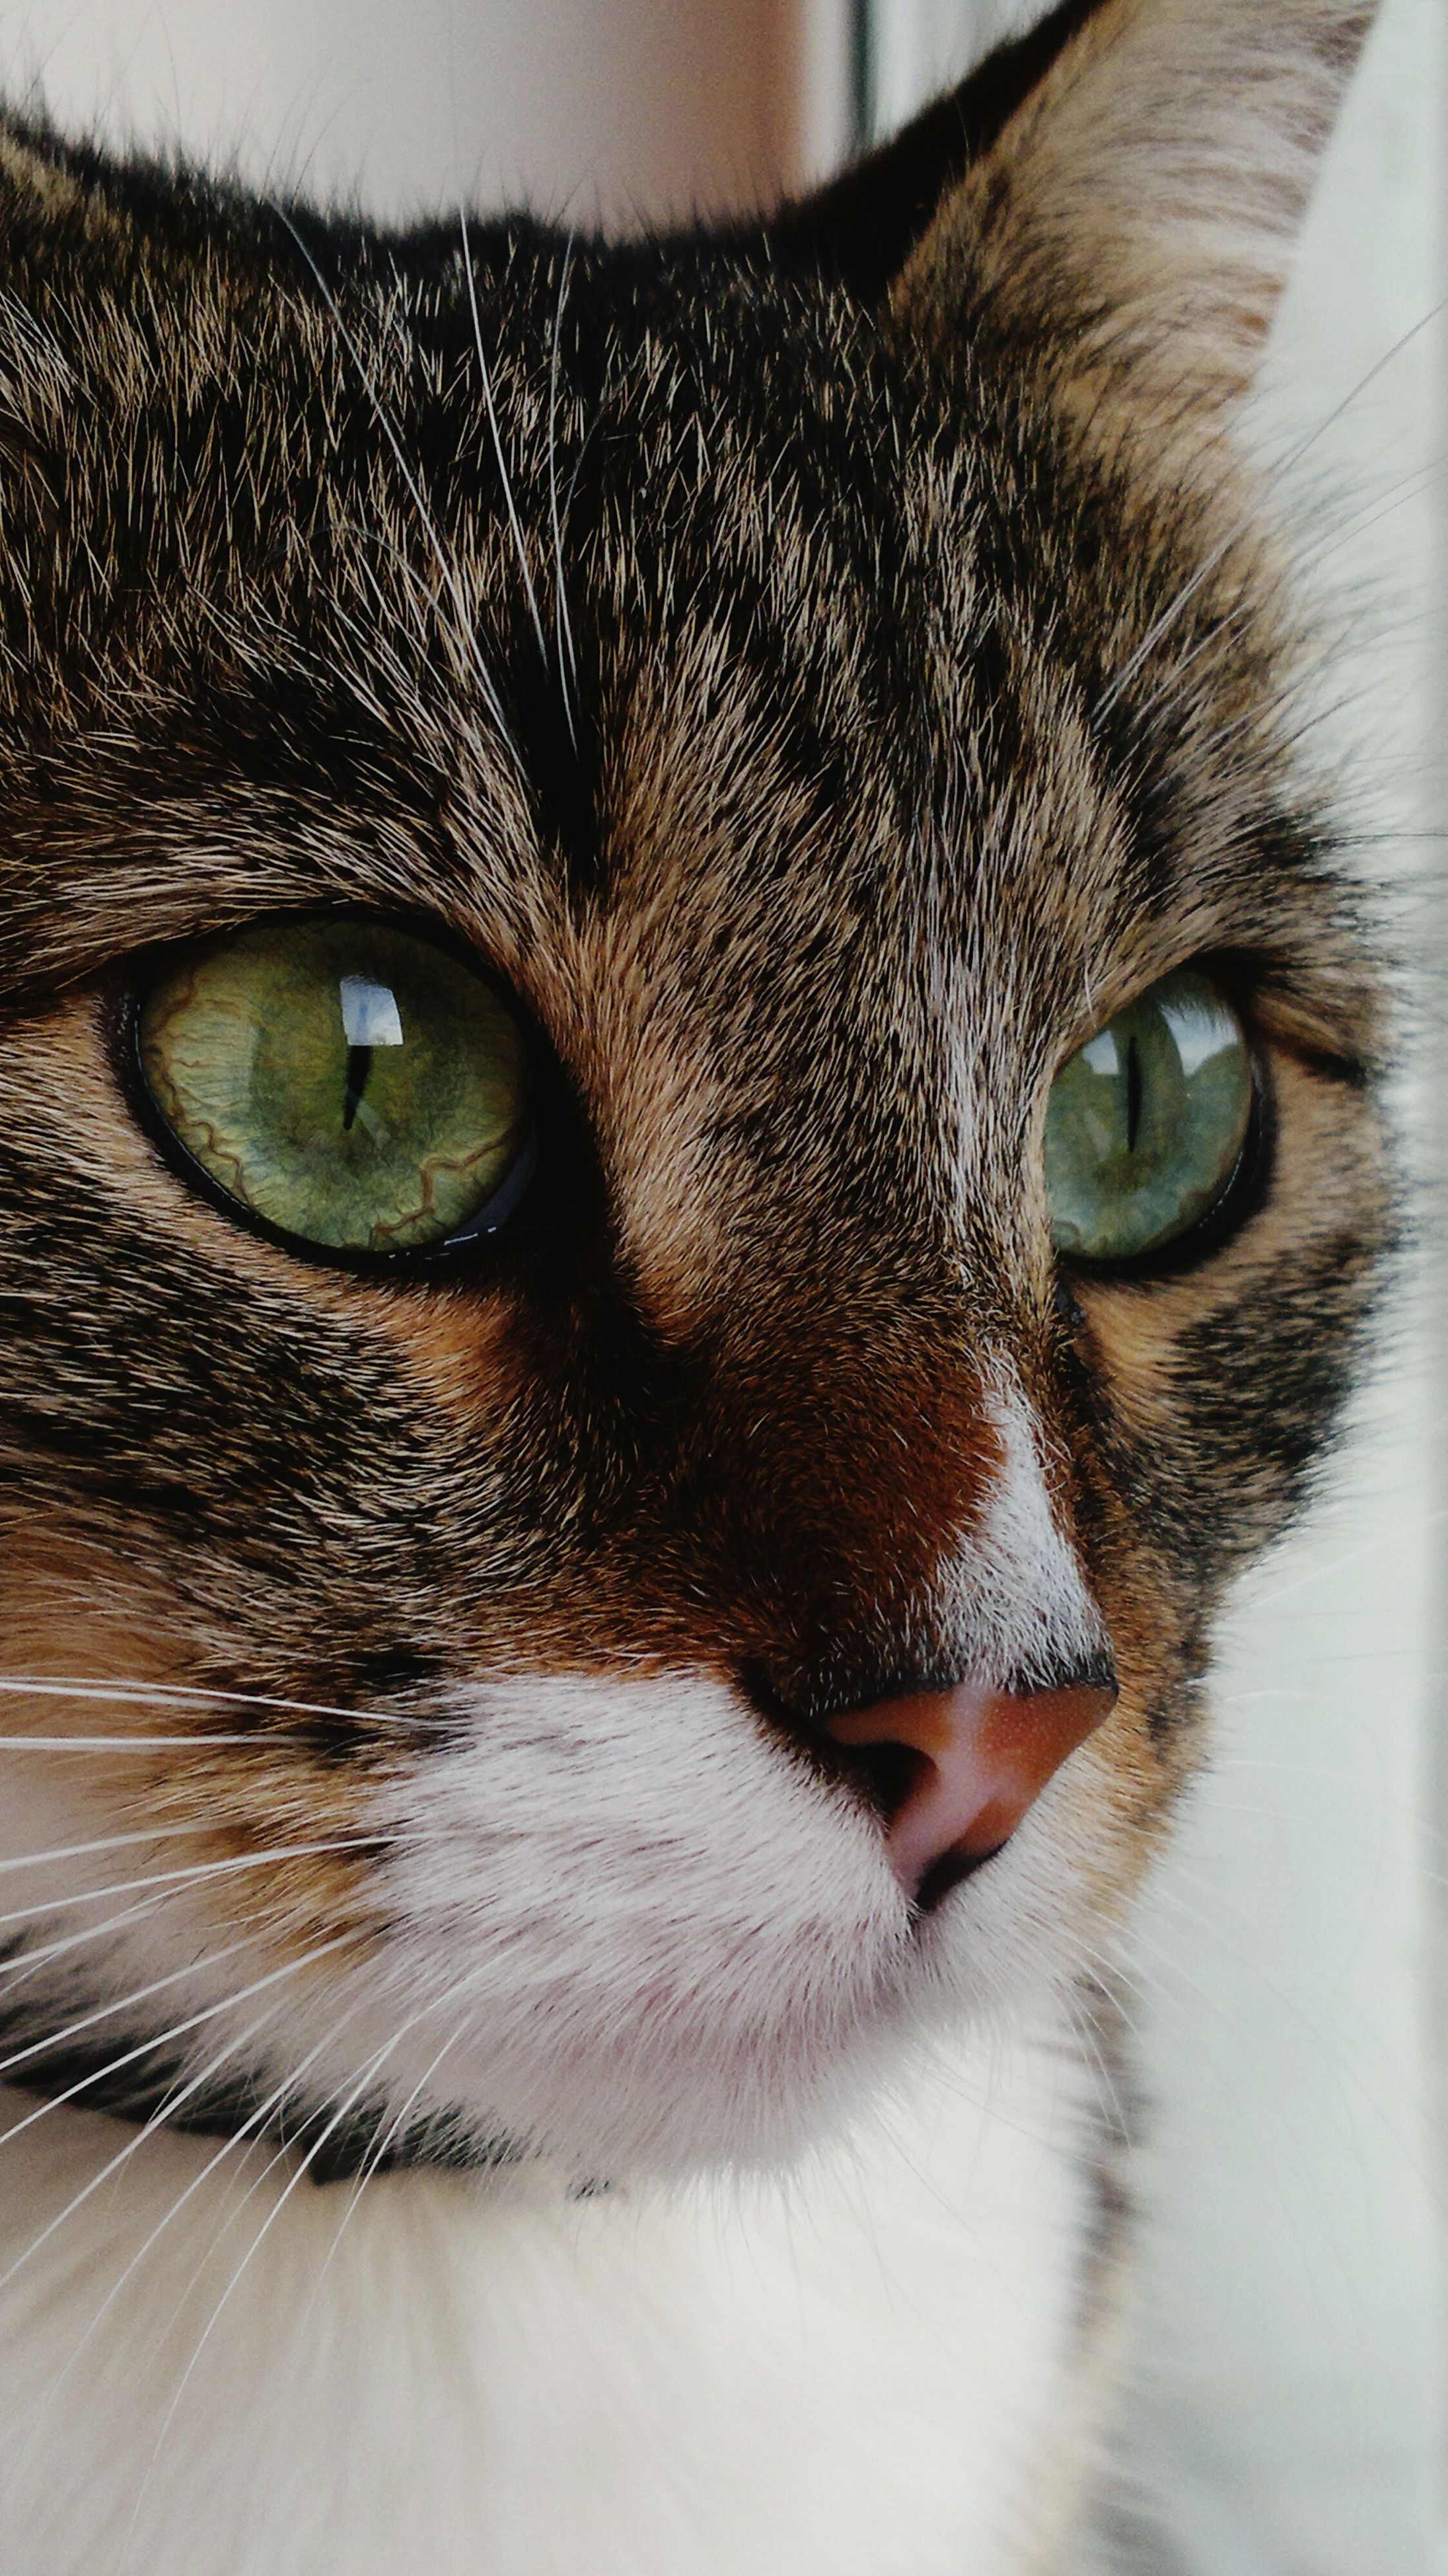 pets, one animal, animal themes, domestic animals, domestic cat, cat, animal eye, animal head, close-up, mammal, whisker, feline, portrait, looking at camera, indoors, animal body part, staring, part of, snout, alertness